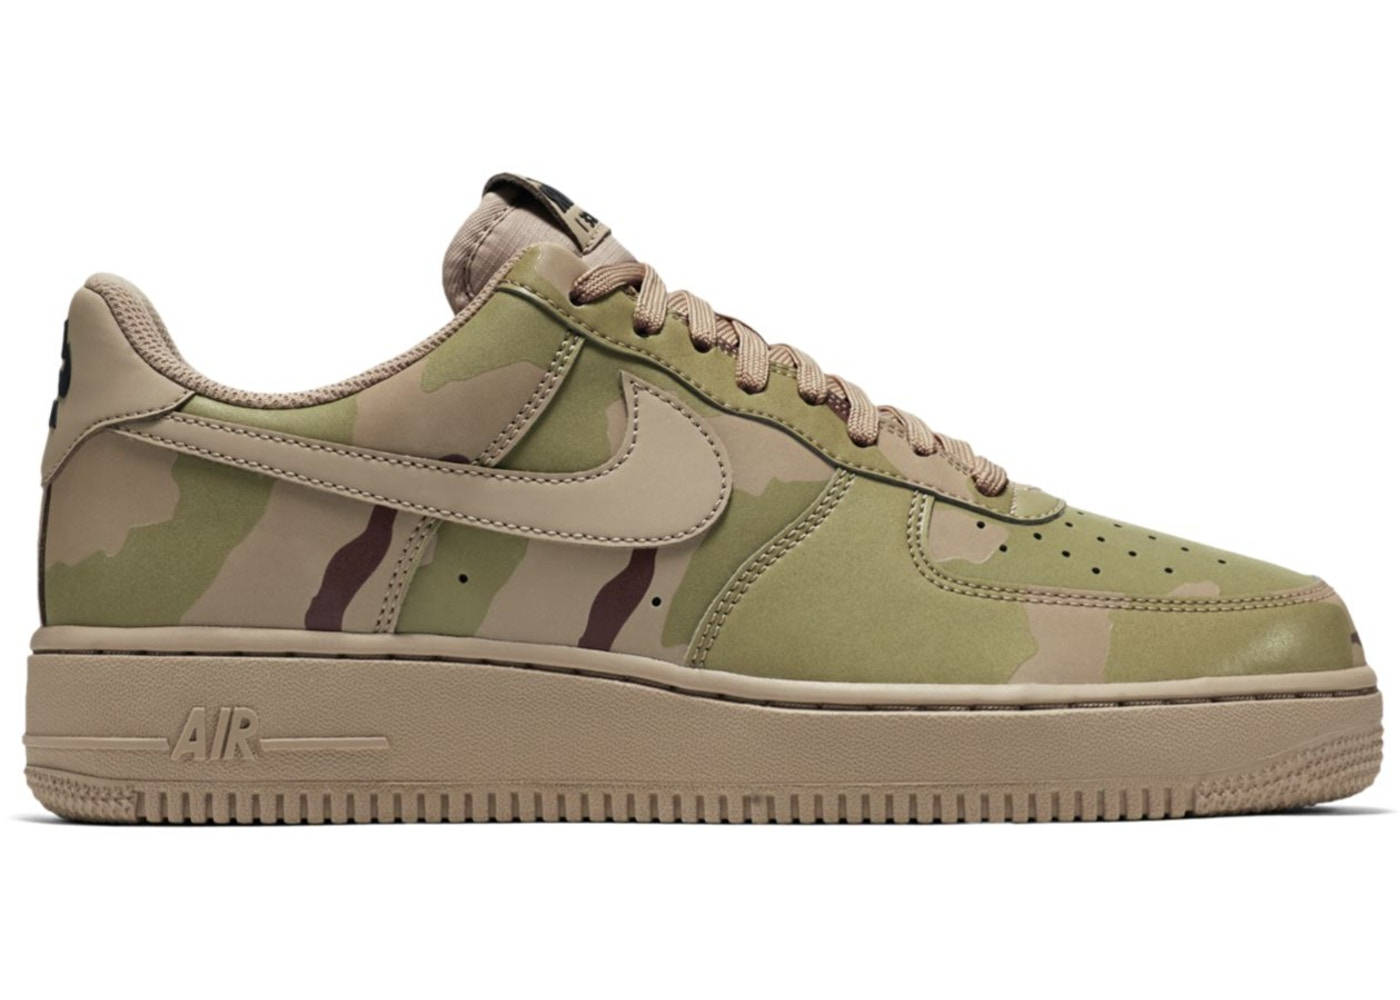 Desert Force Camo 1 Low Reflective Air Nnm0vw8